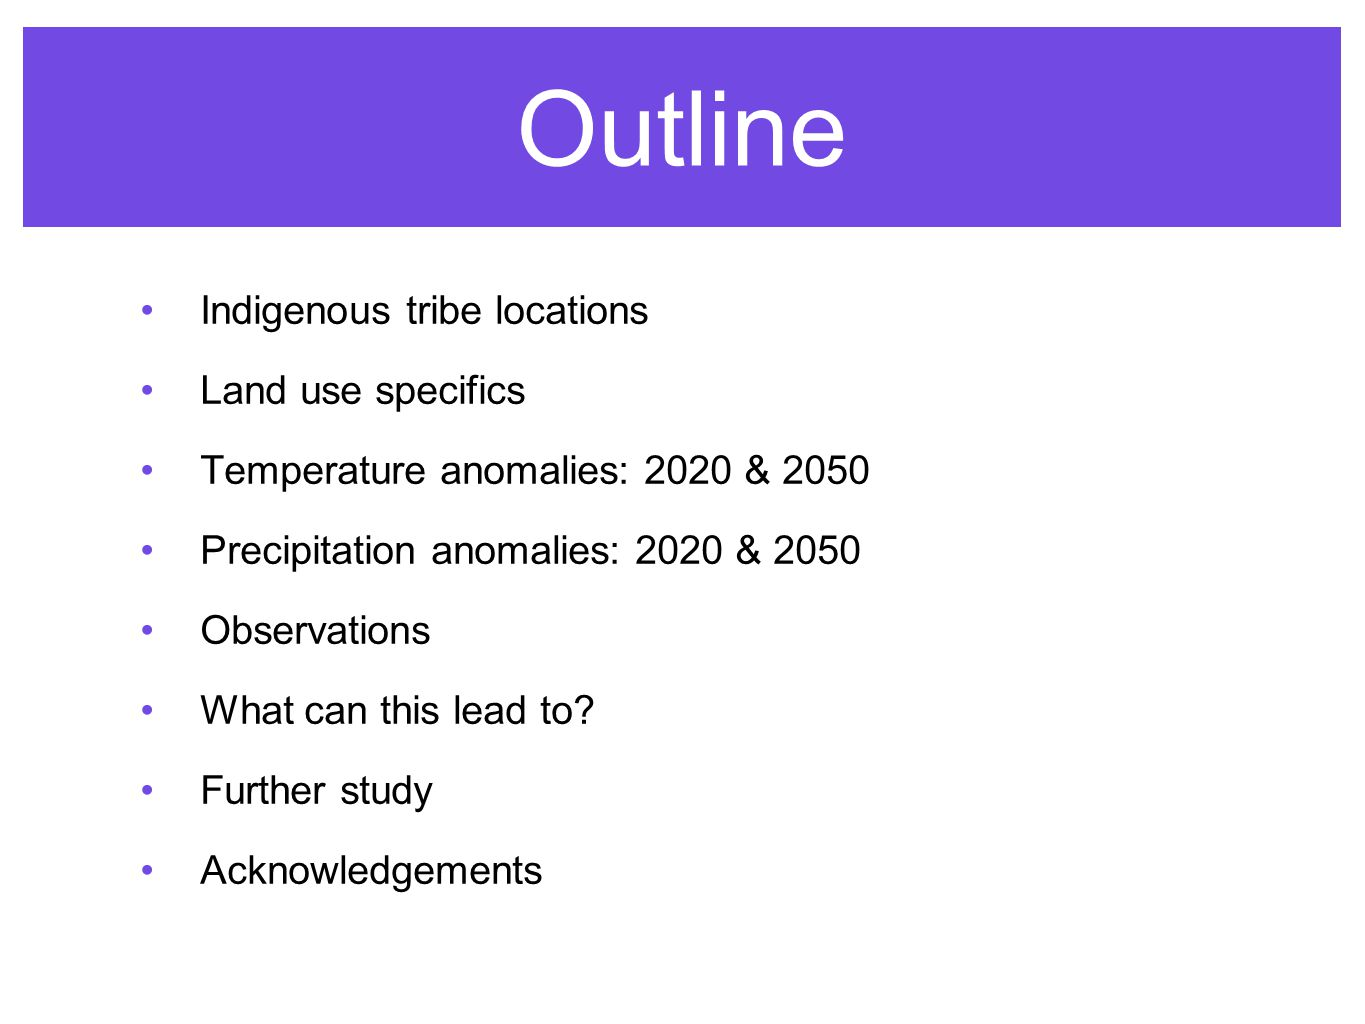 Outline Indigenous tribe locations Land use specifics Temperature anomalies: 2020 & 2050 Precipitation anomalies: 2020 & 2050 Observations What can th